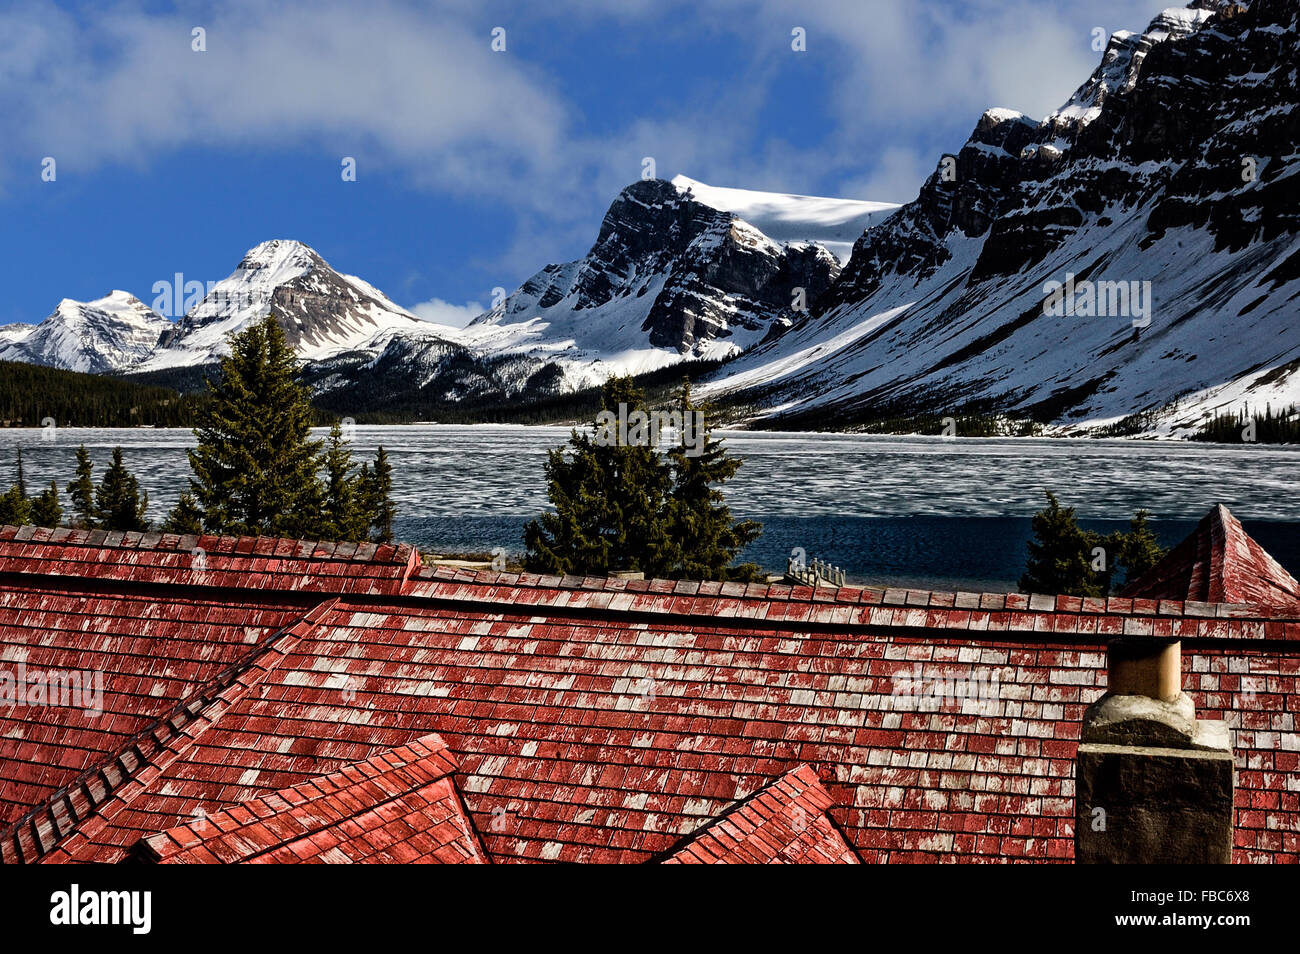 Bow Lake, Icefields Parkway viewed from the Num-Ti-Jah Lodge, Banff National Park. Canadian Rockies. Alberta. Canada - Stock Image